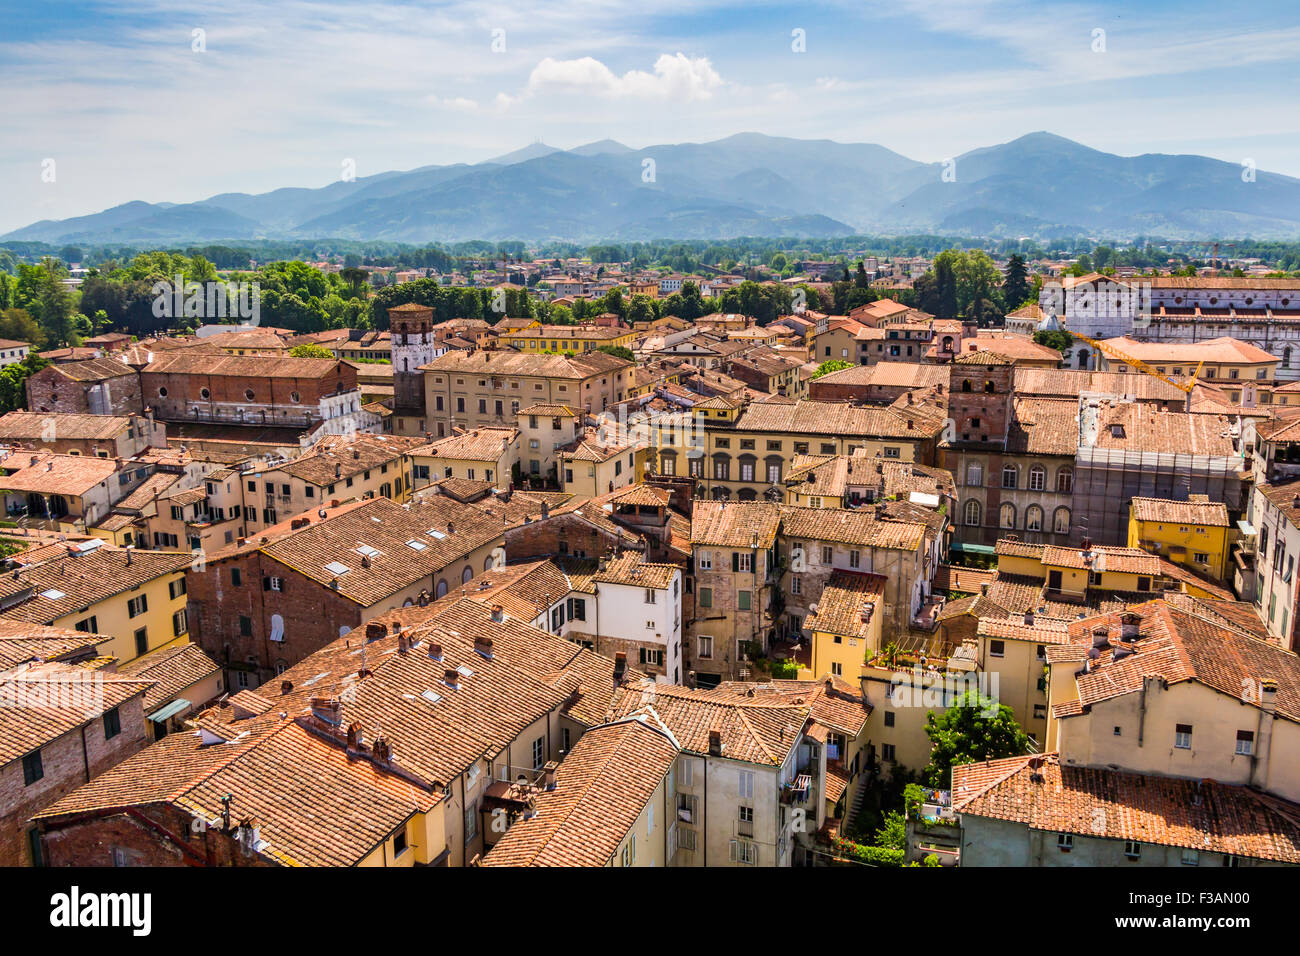 View over Italian town Lucca with typical terracotta roofs - Stock Image